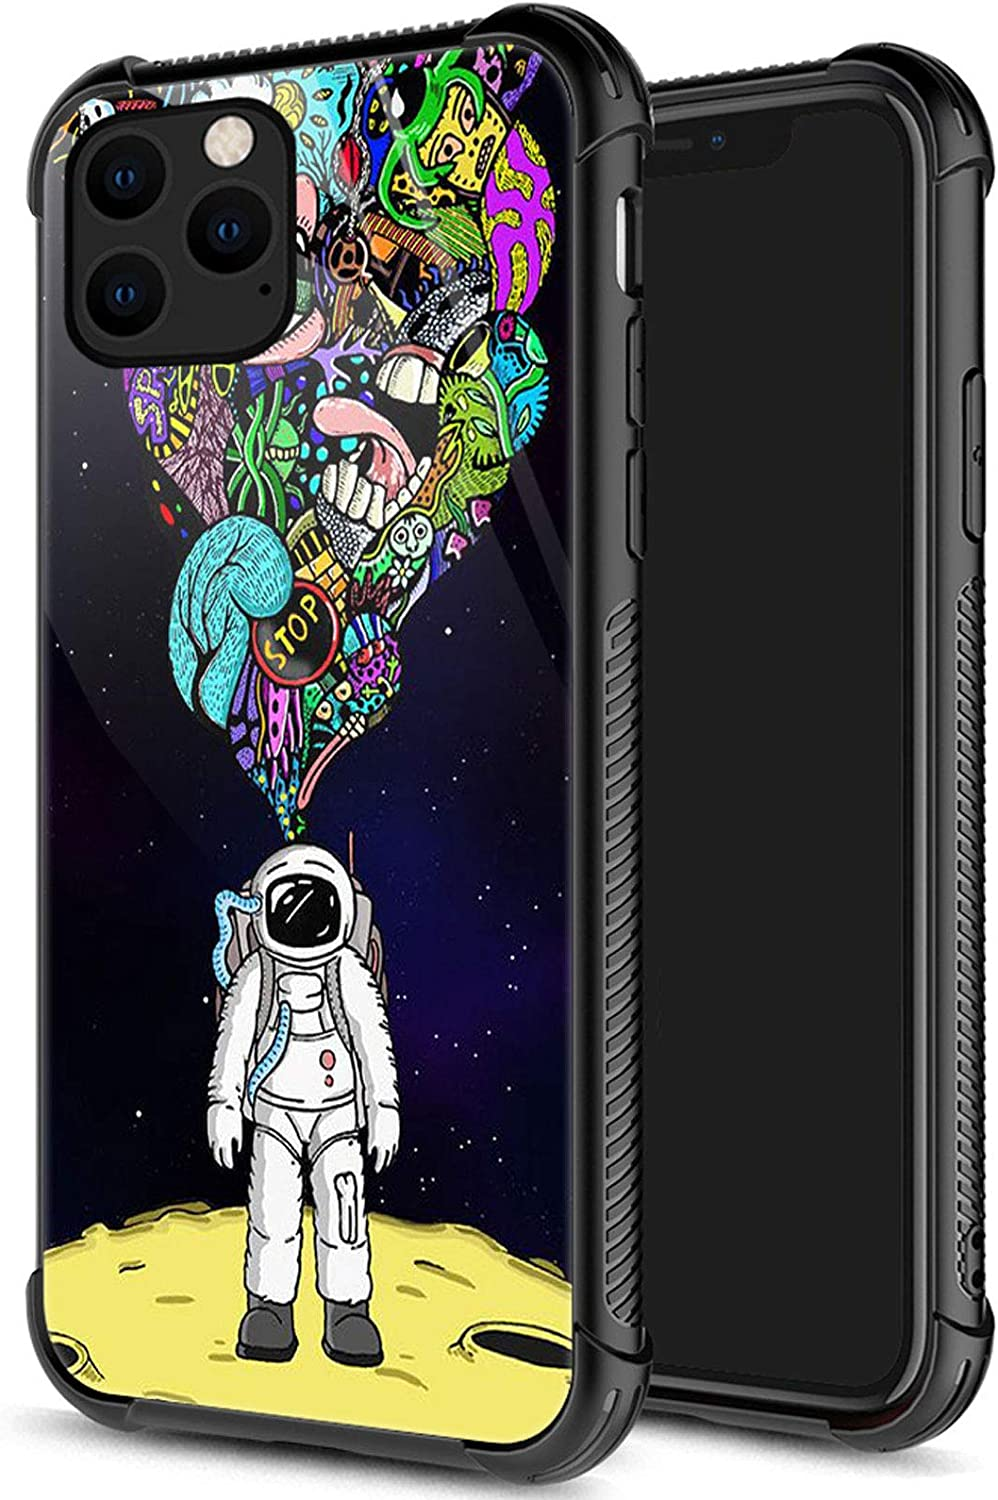 iPhone 12 Case, Space Travel iPhone 12 Cases for Men Boys, Pattern Design Shockproof Anti-Scratch Organic Glass Case for Apple iPhone 12 6.1-inch Space Travel